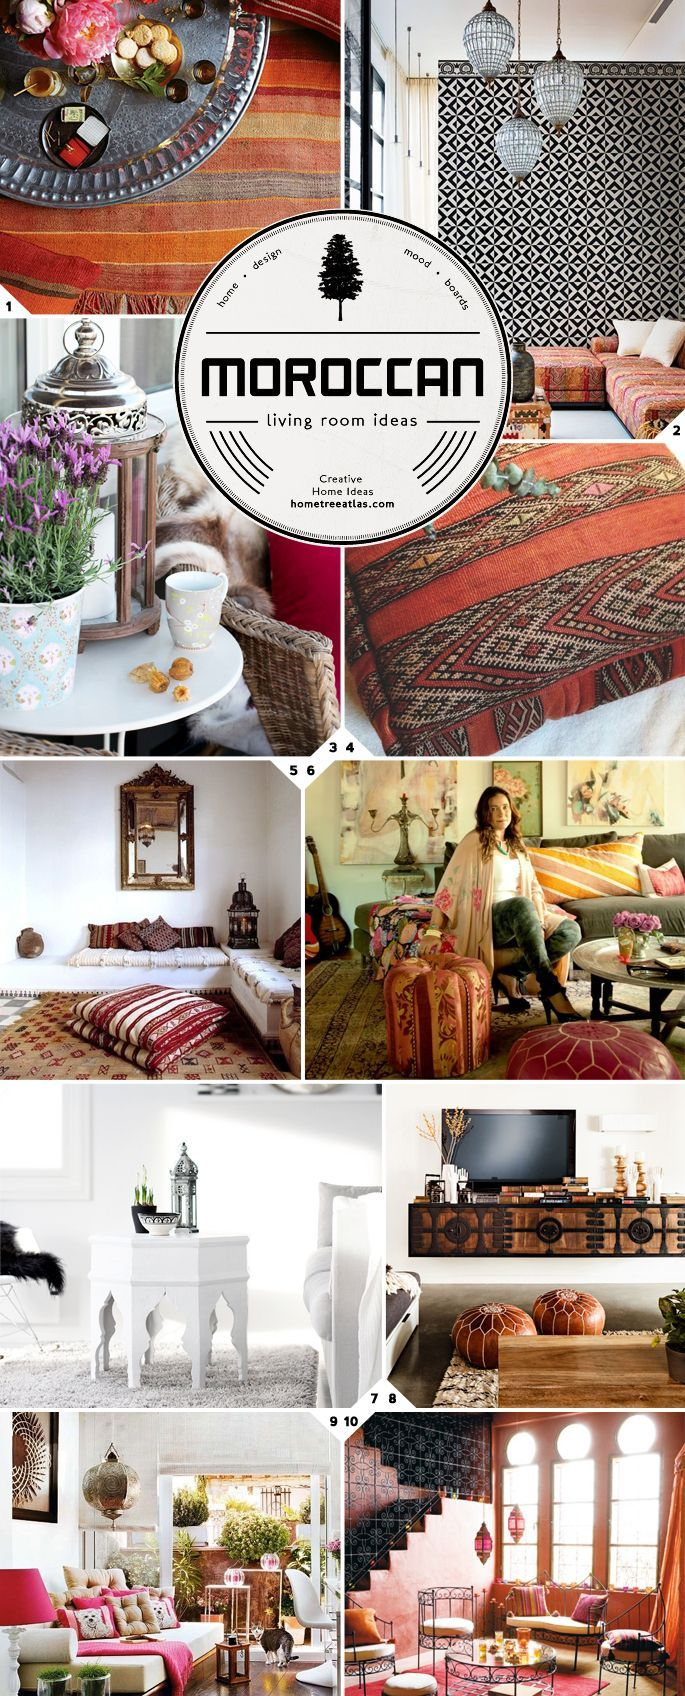 320 best moroccan home style images on pinterest | moroccan design